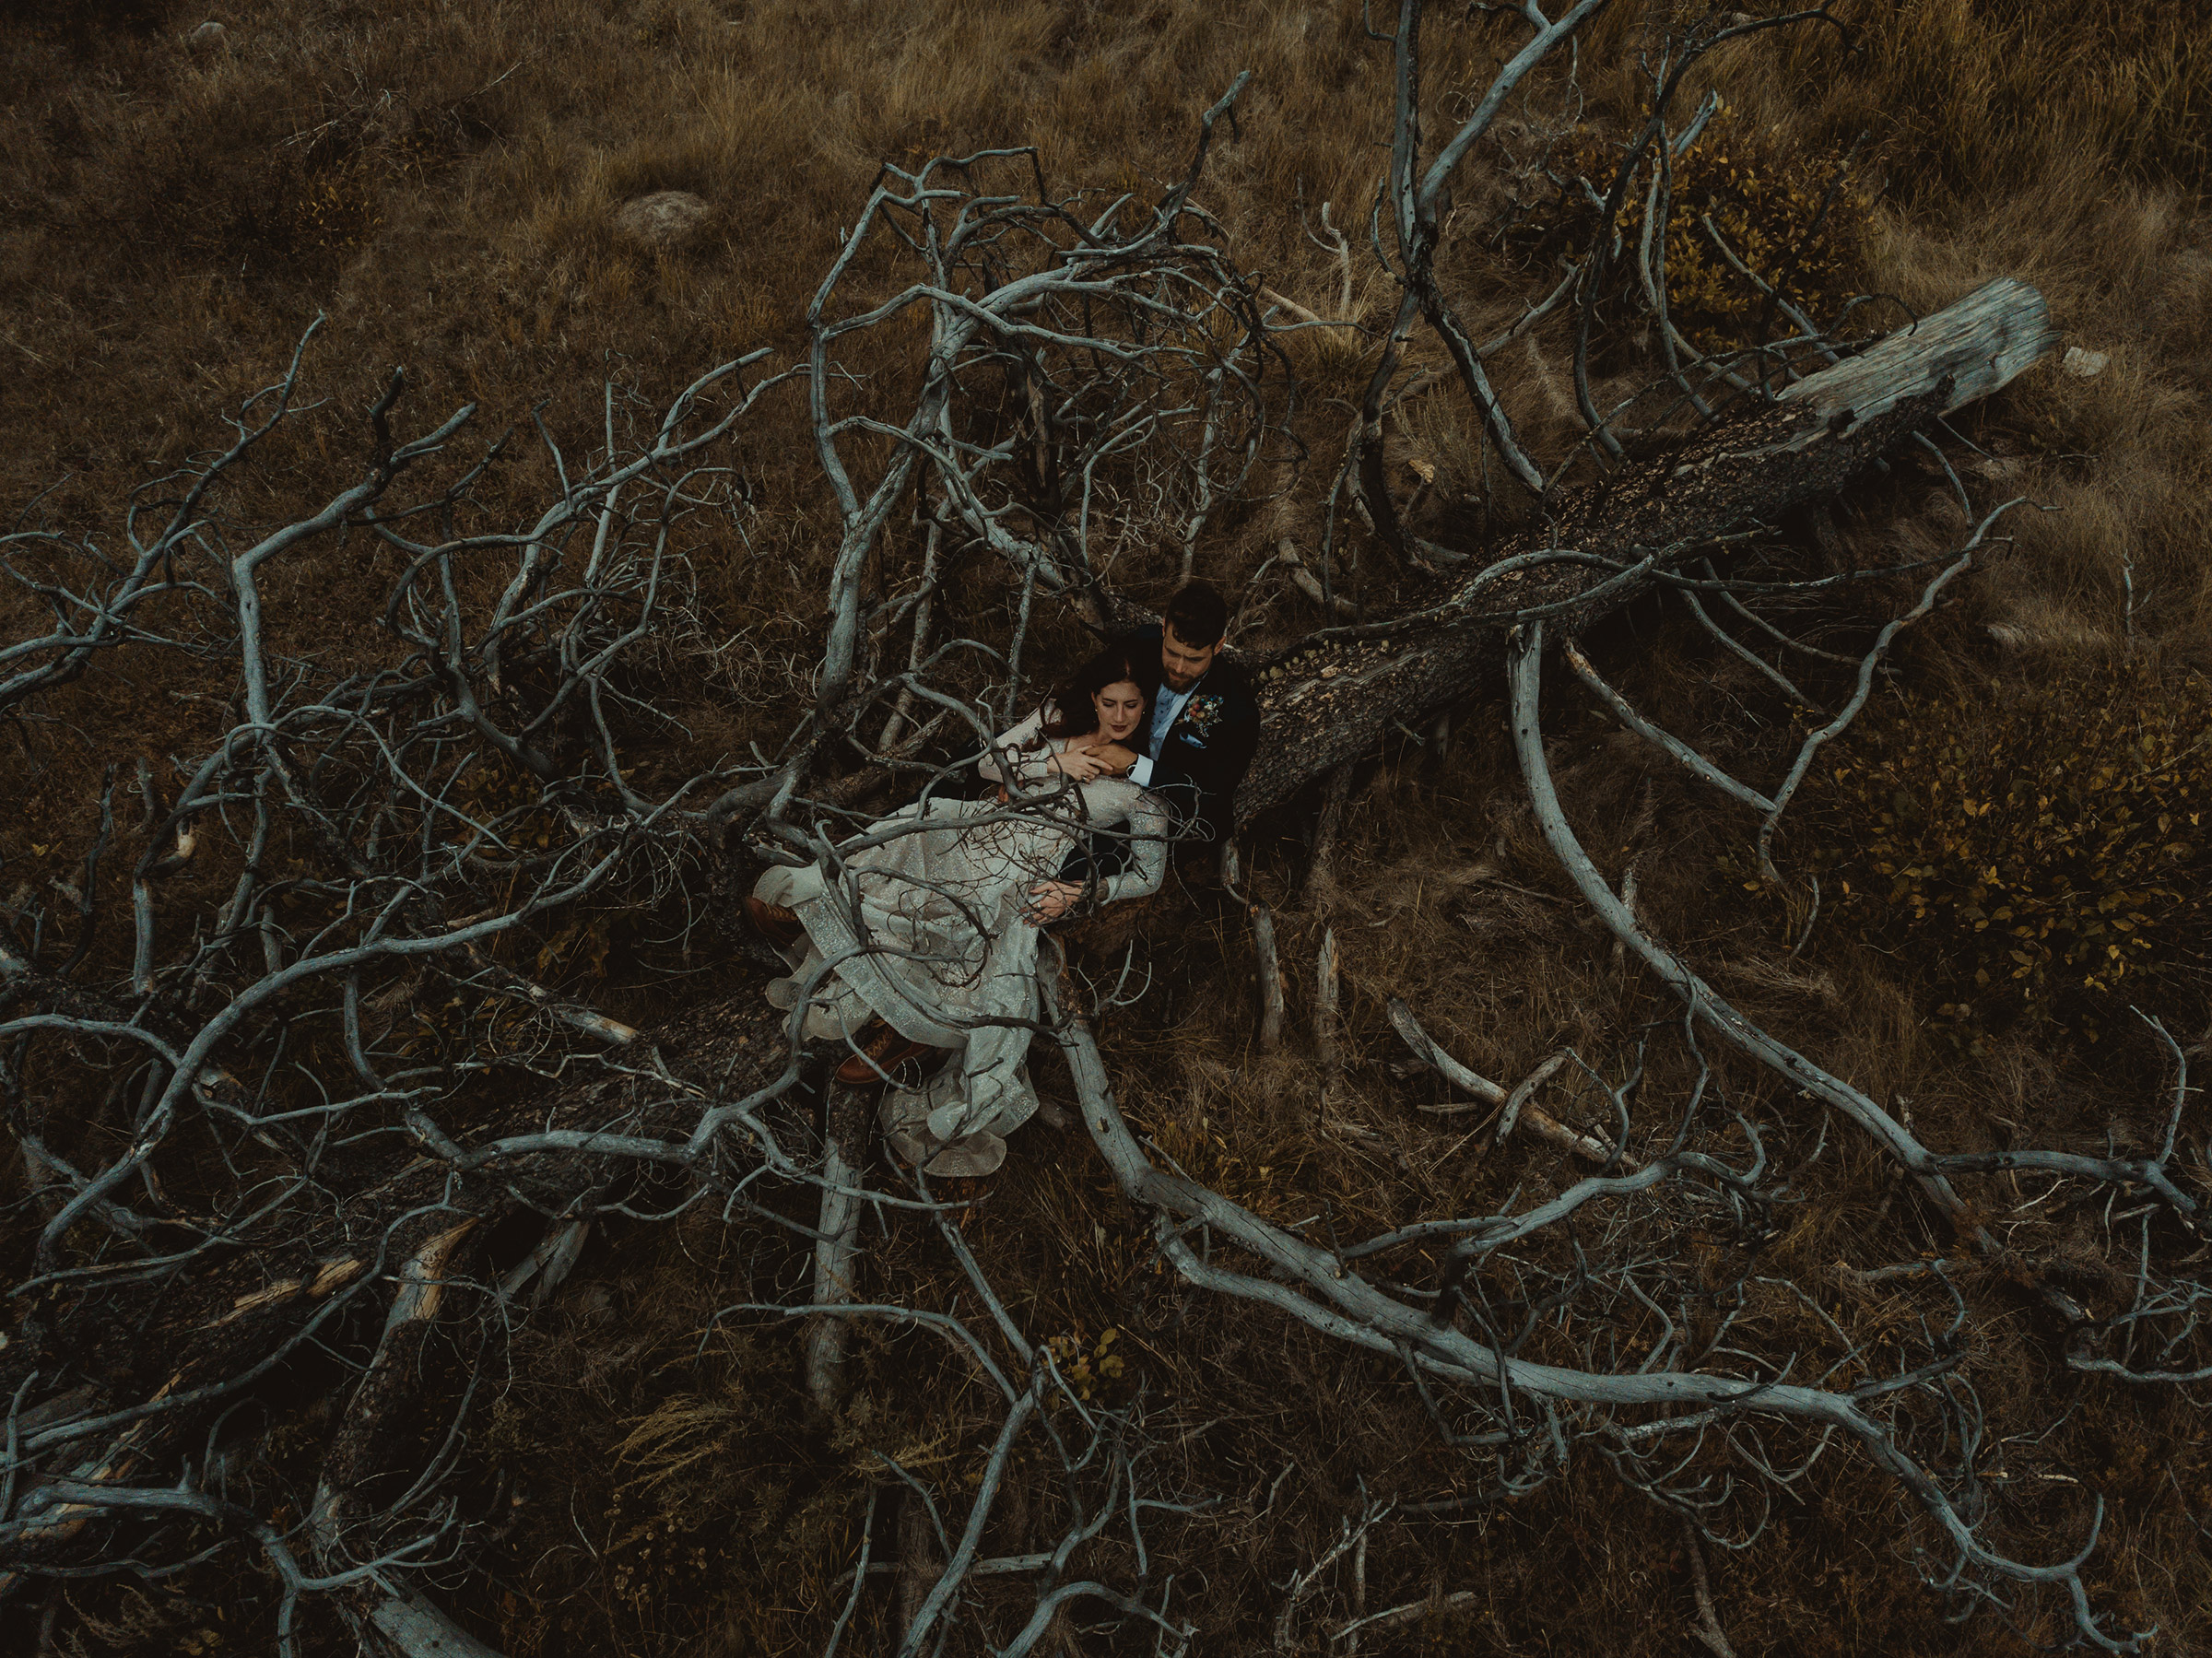 mr-mrs-likes-double-a-barn-drone-photo-of-couple-in-old-dead-tree-grand-lake-colorado-raelyn-ramey-photography-363.jpg